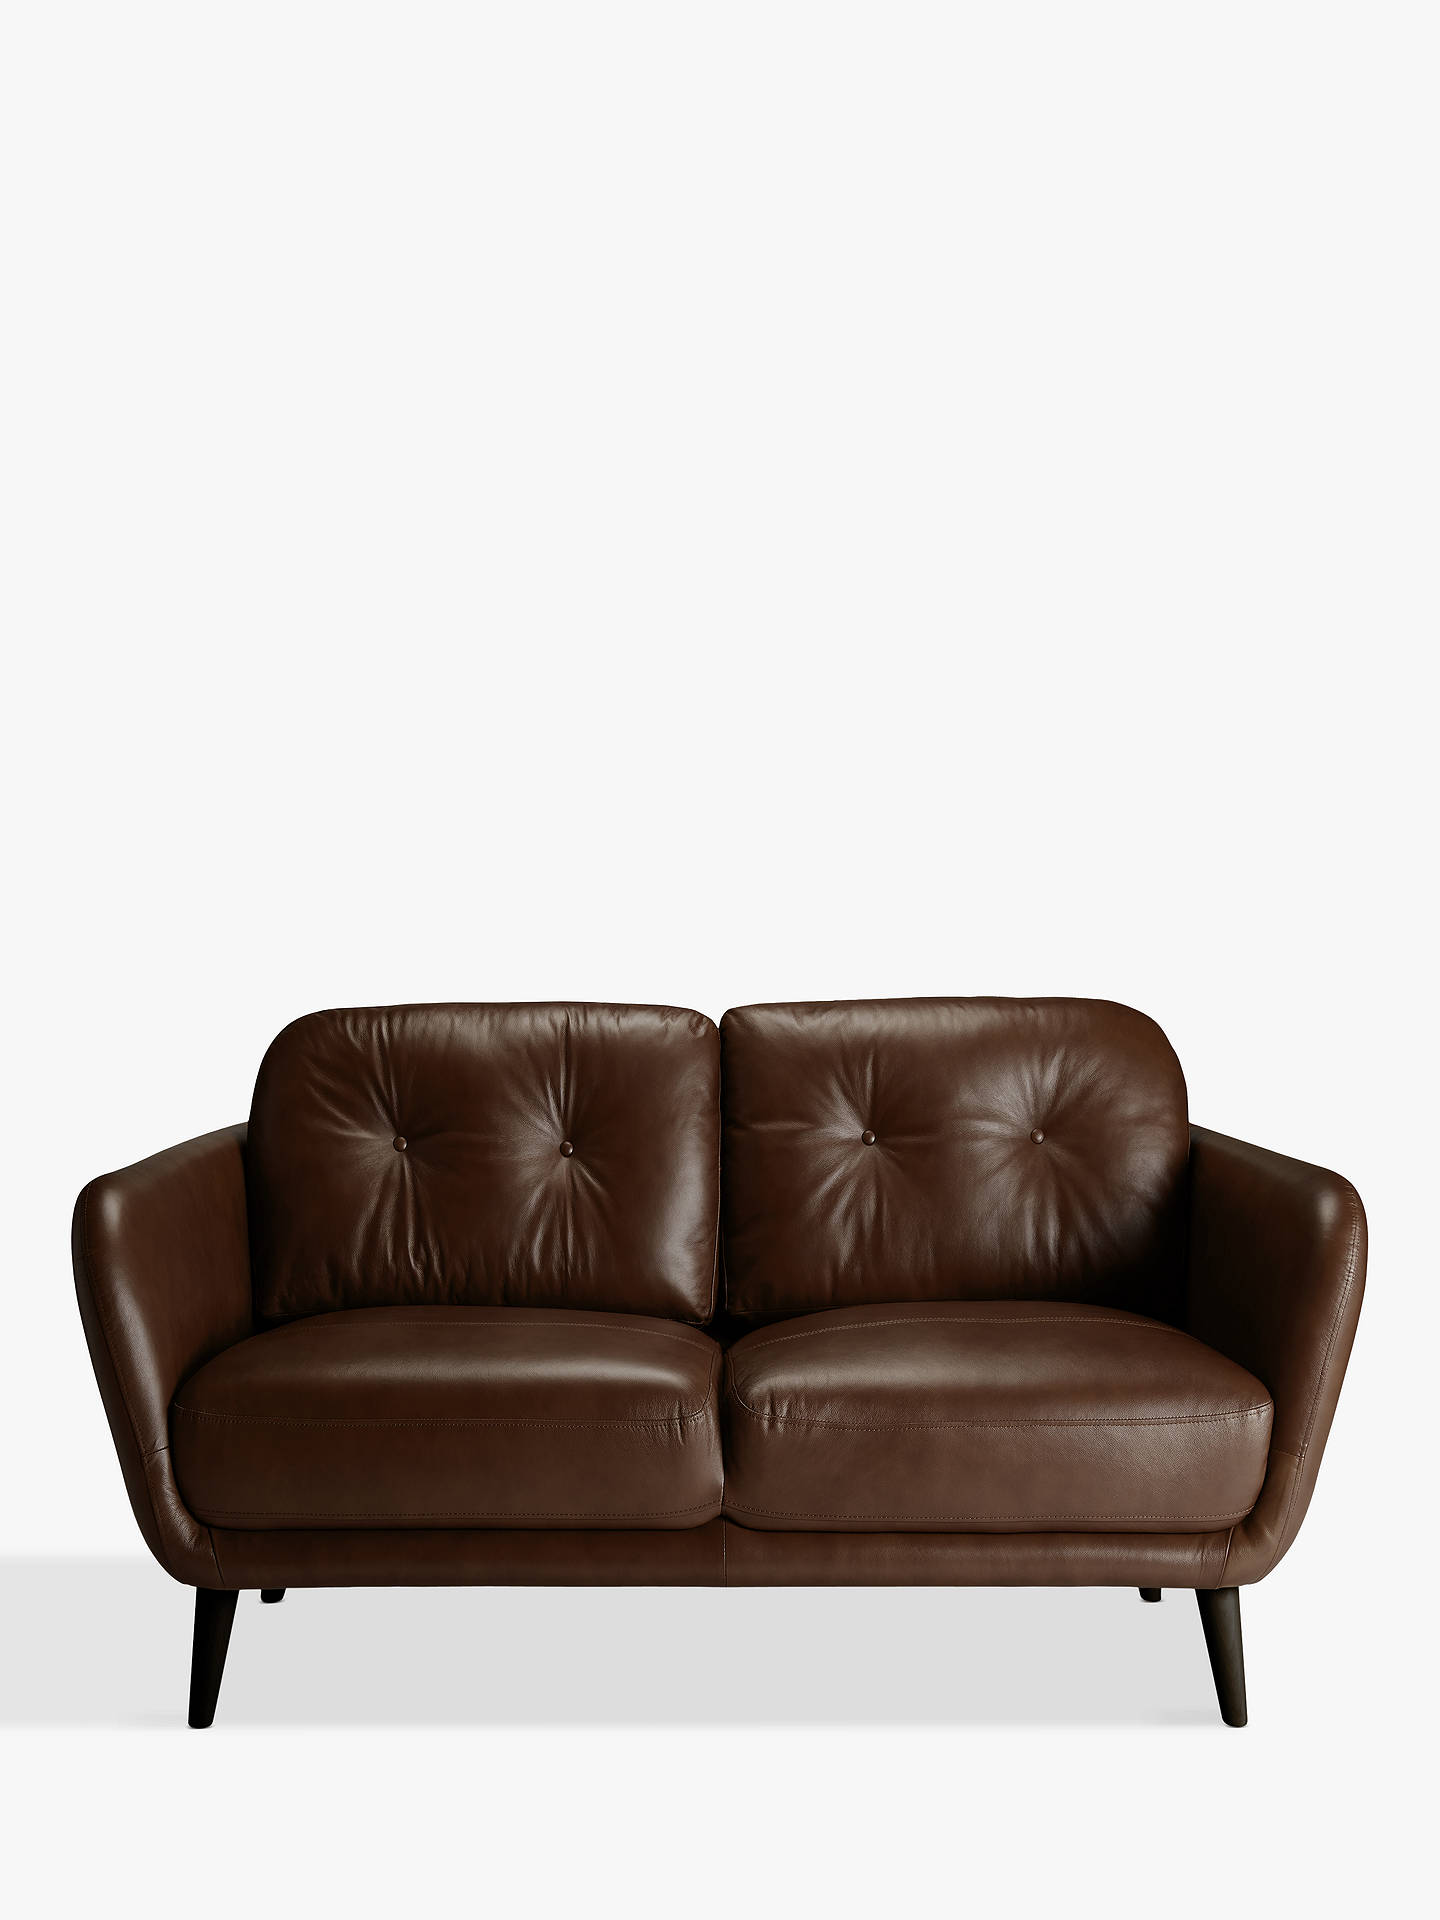 BuyHouse by John Lewis Arlo Small 2 Seater Leather Sofa, Dark Leg, Milan Chestnut Online at johnlewis.com